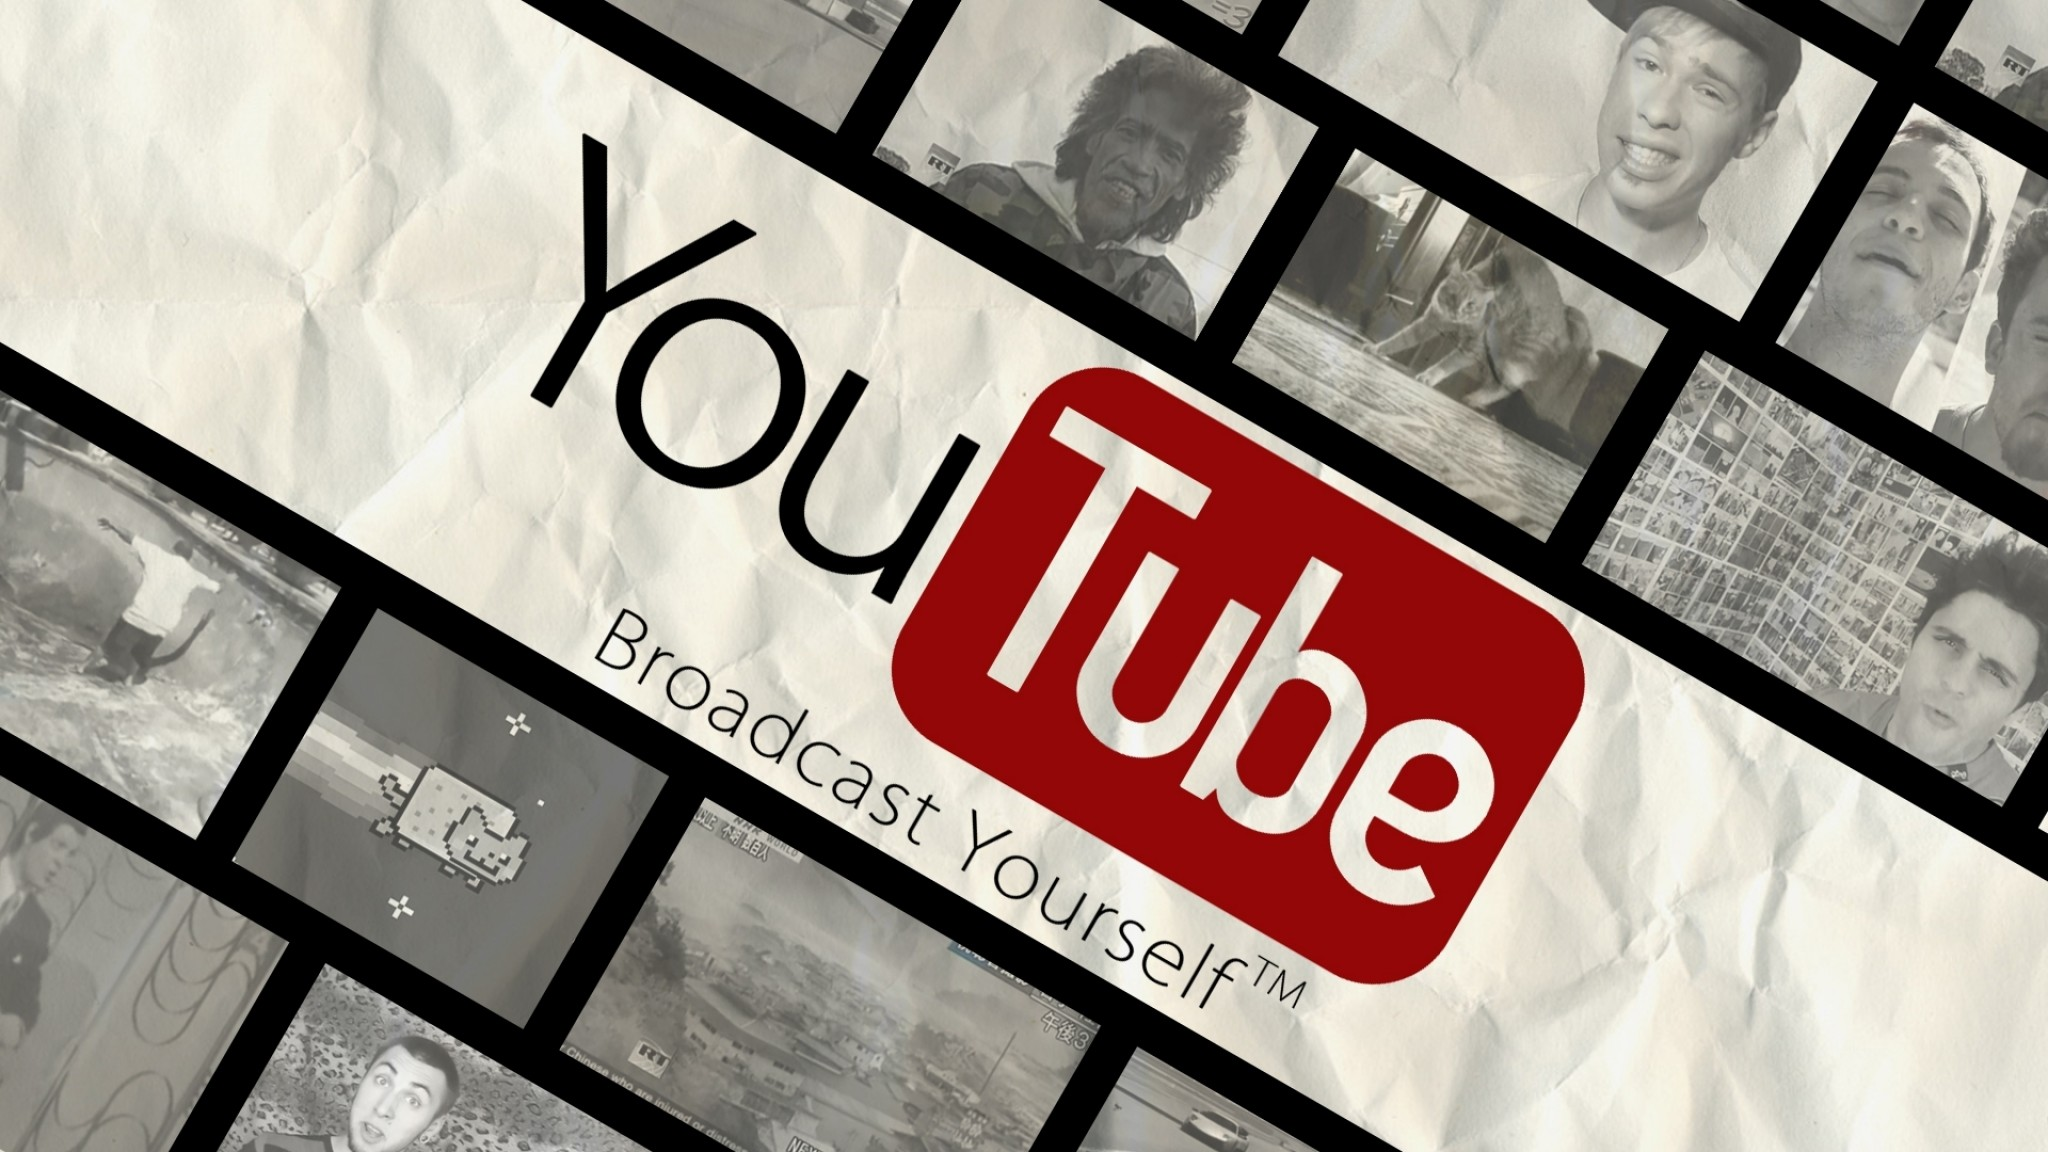 youtube wallpaper 2048 1152 hd wallpaper 2048x1152